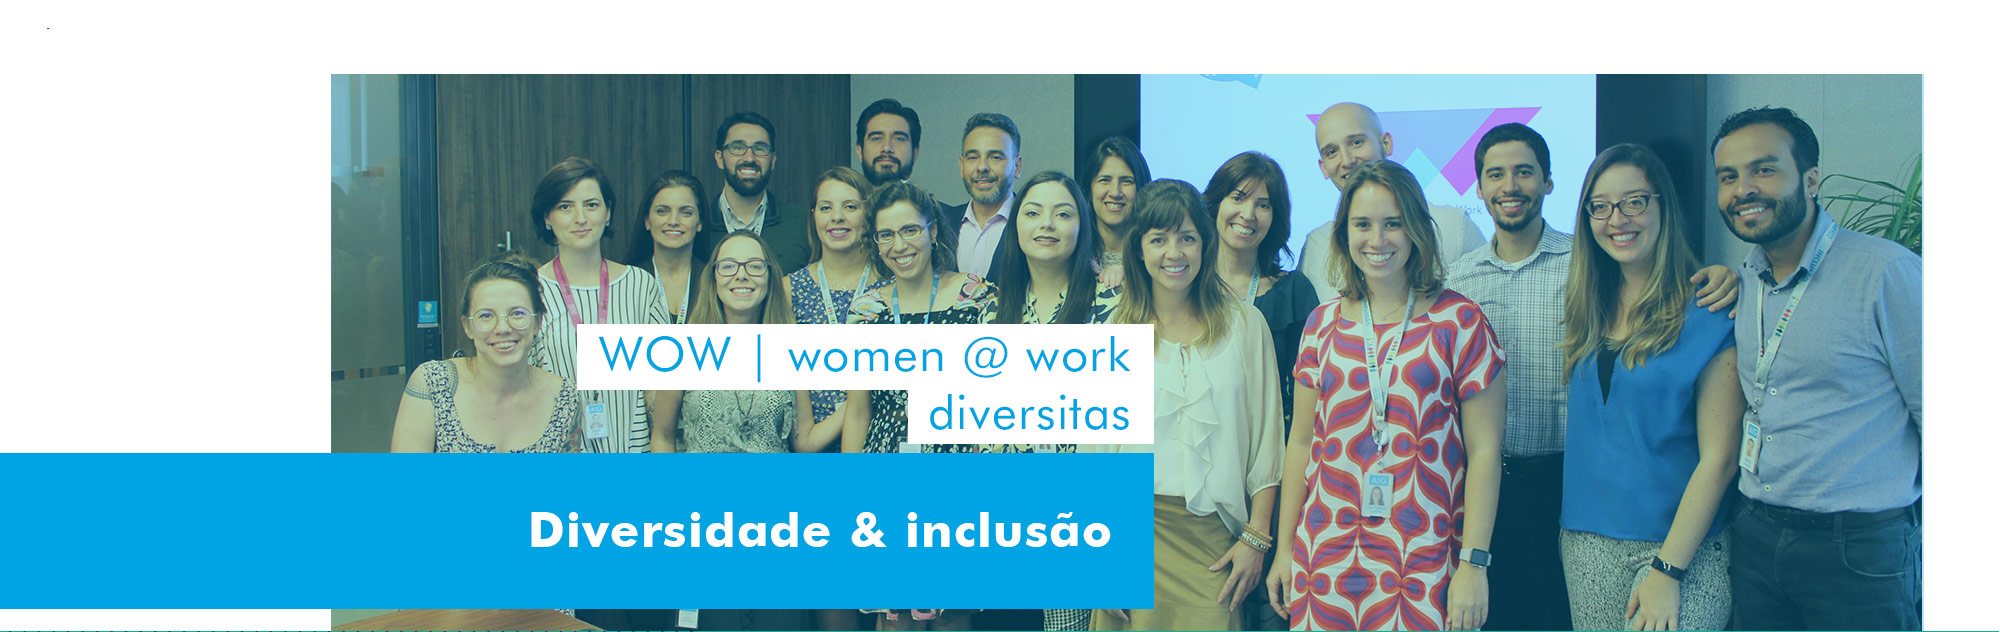 Participantes do WOW - Womans @ Work